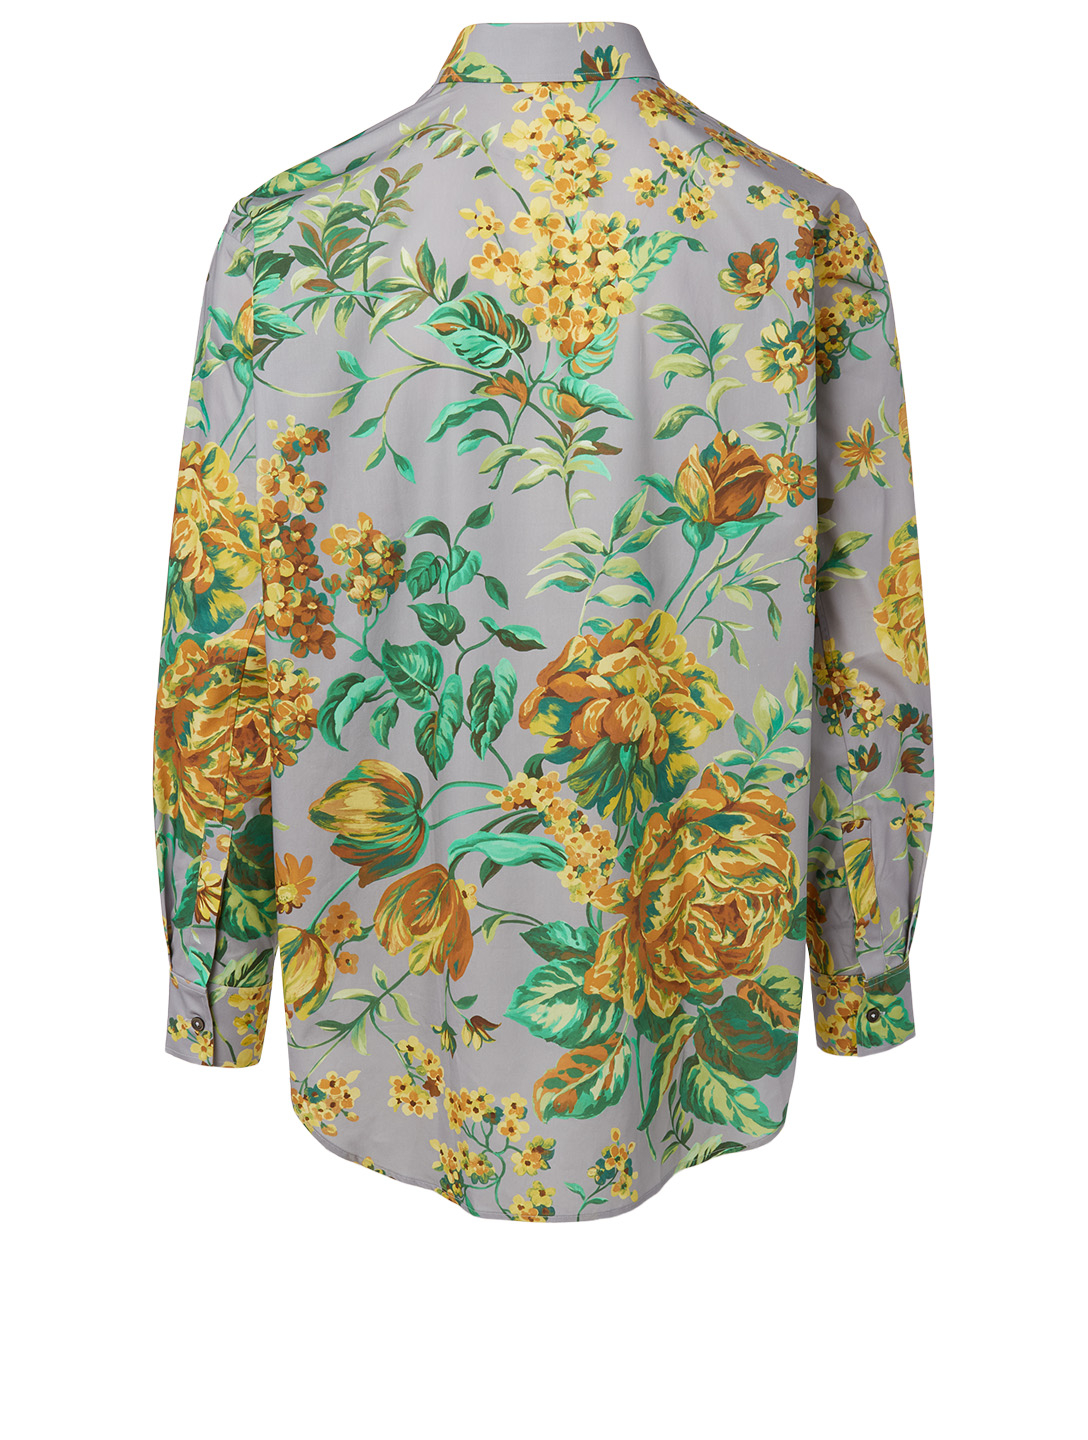 GIVENCHY Cotton Shirt In Floral Print Men's Grey